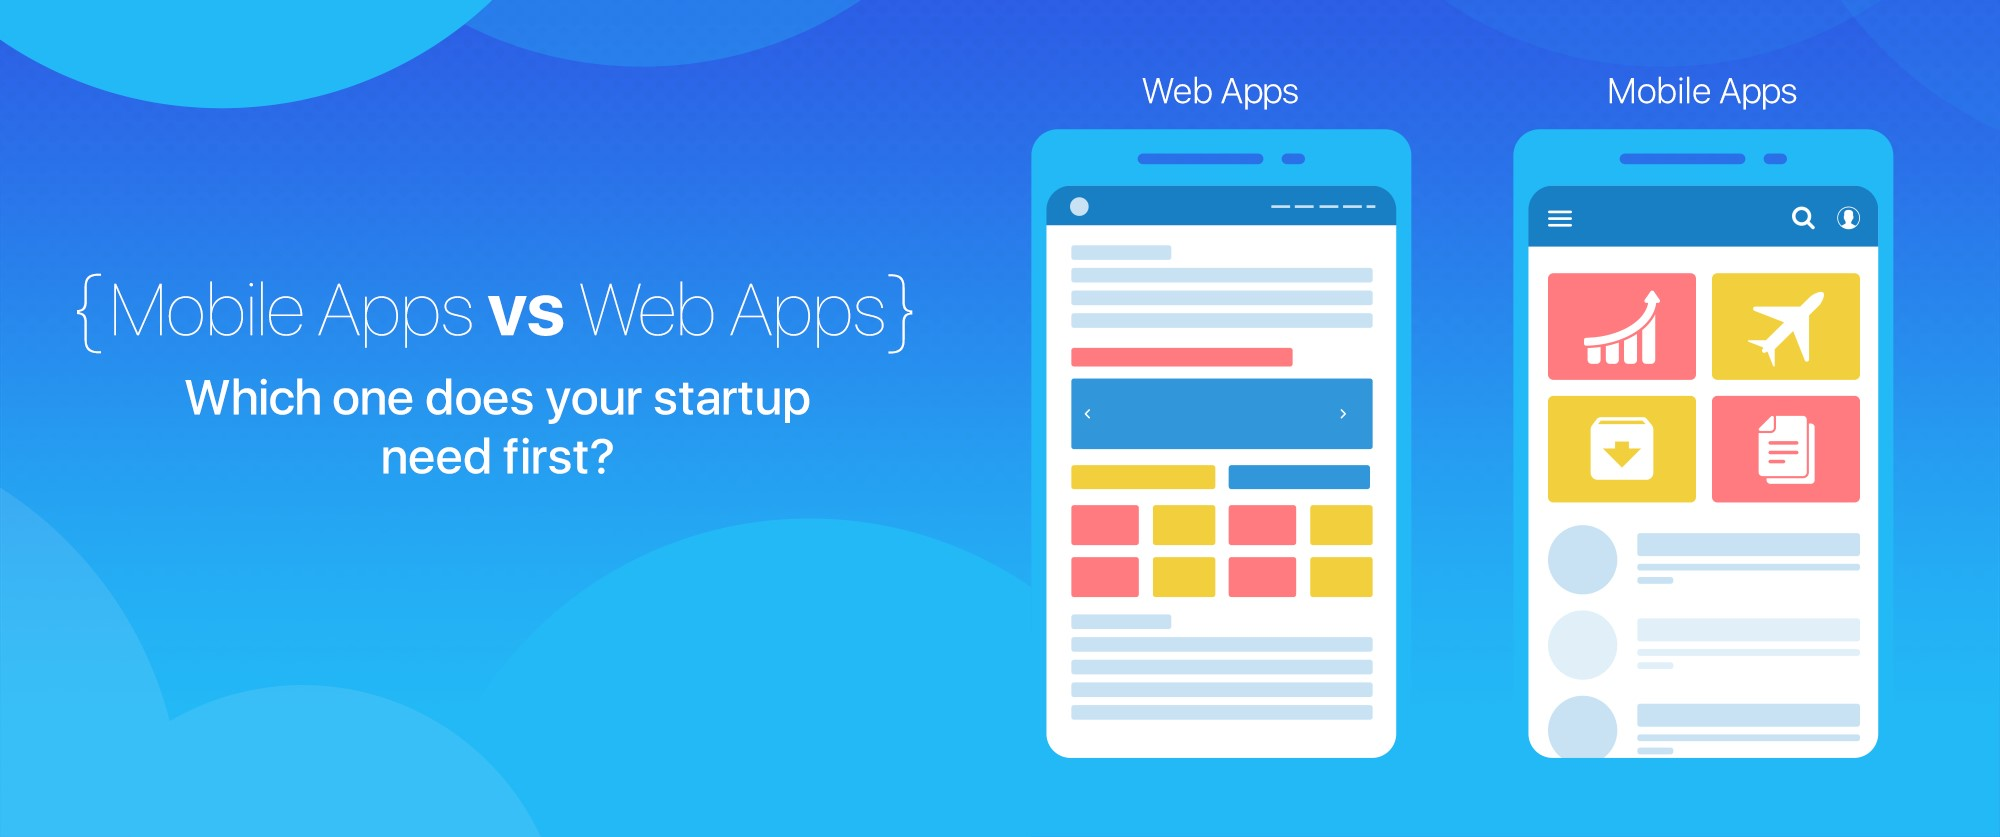 Mobile App Development vs Web App Development- Which one does your startup need first?